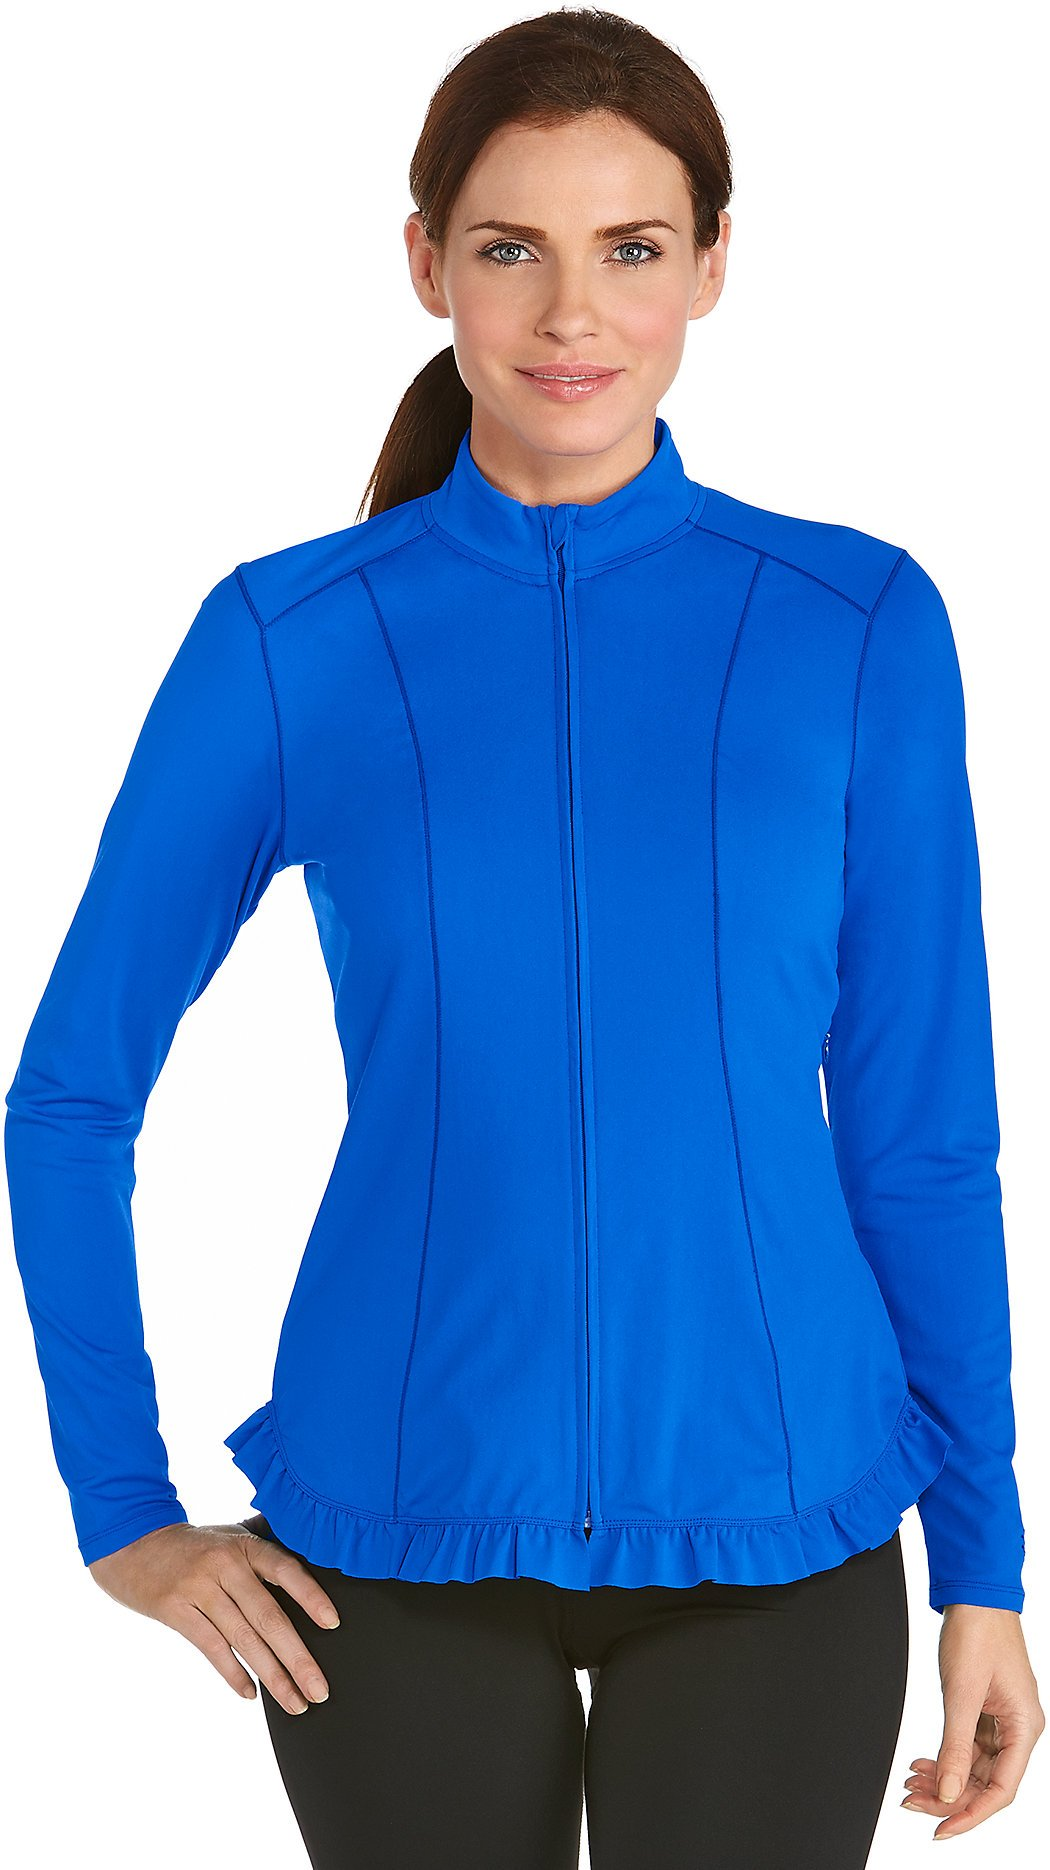 Coolibar UPF 50+ Women's Swim Jacket - Sun Protective (Medium- Baja Blue) by Coolibar